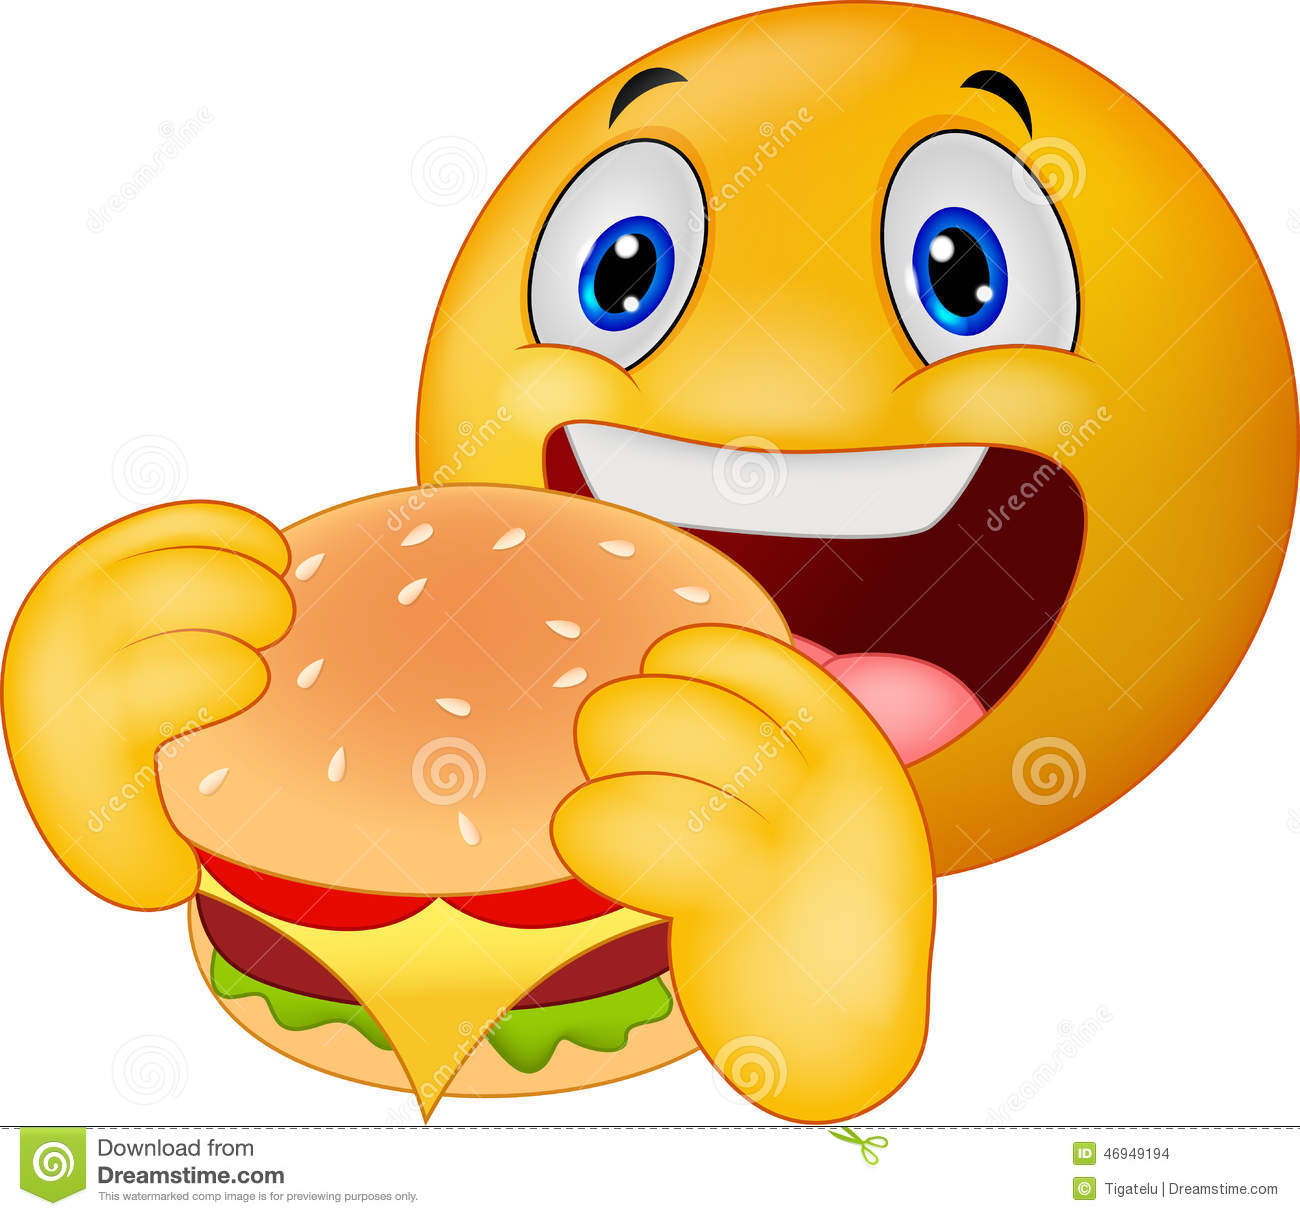 Emoticon Smiley-Face Eating a Burger